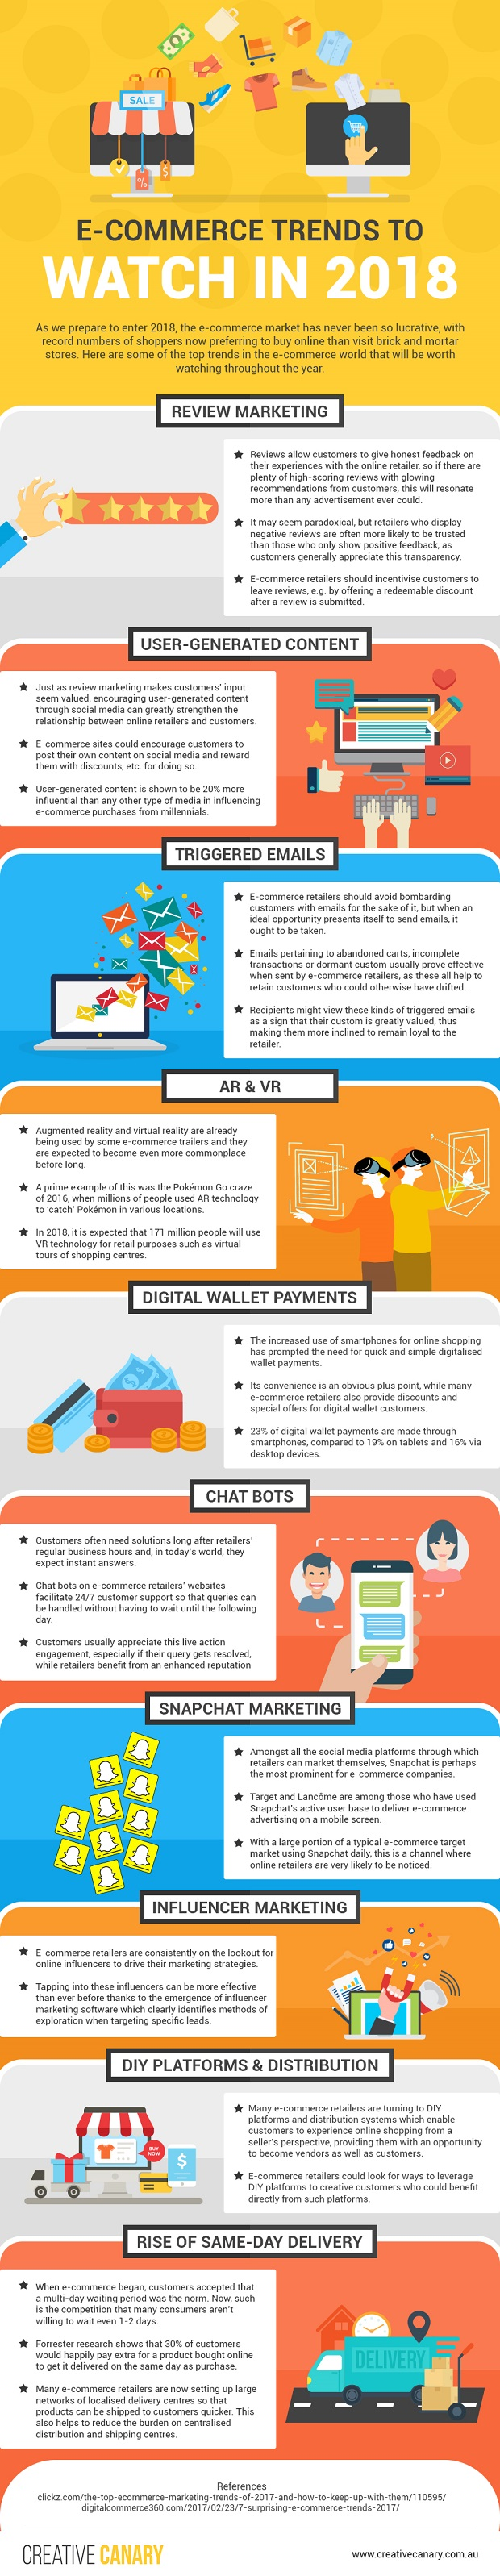 10-ecommerce-trends-to-watch-in-2018